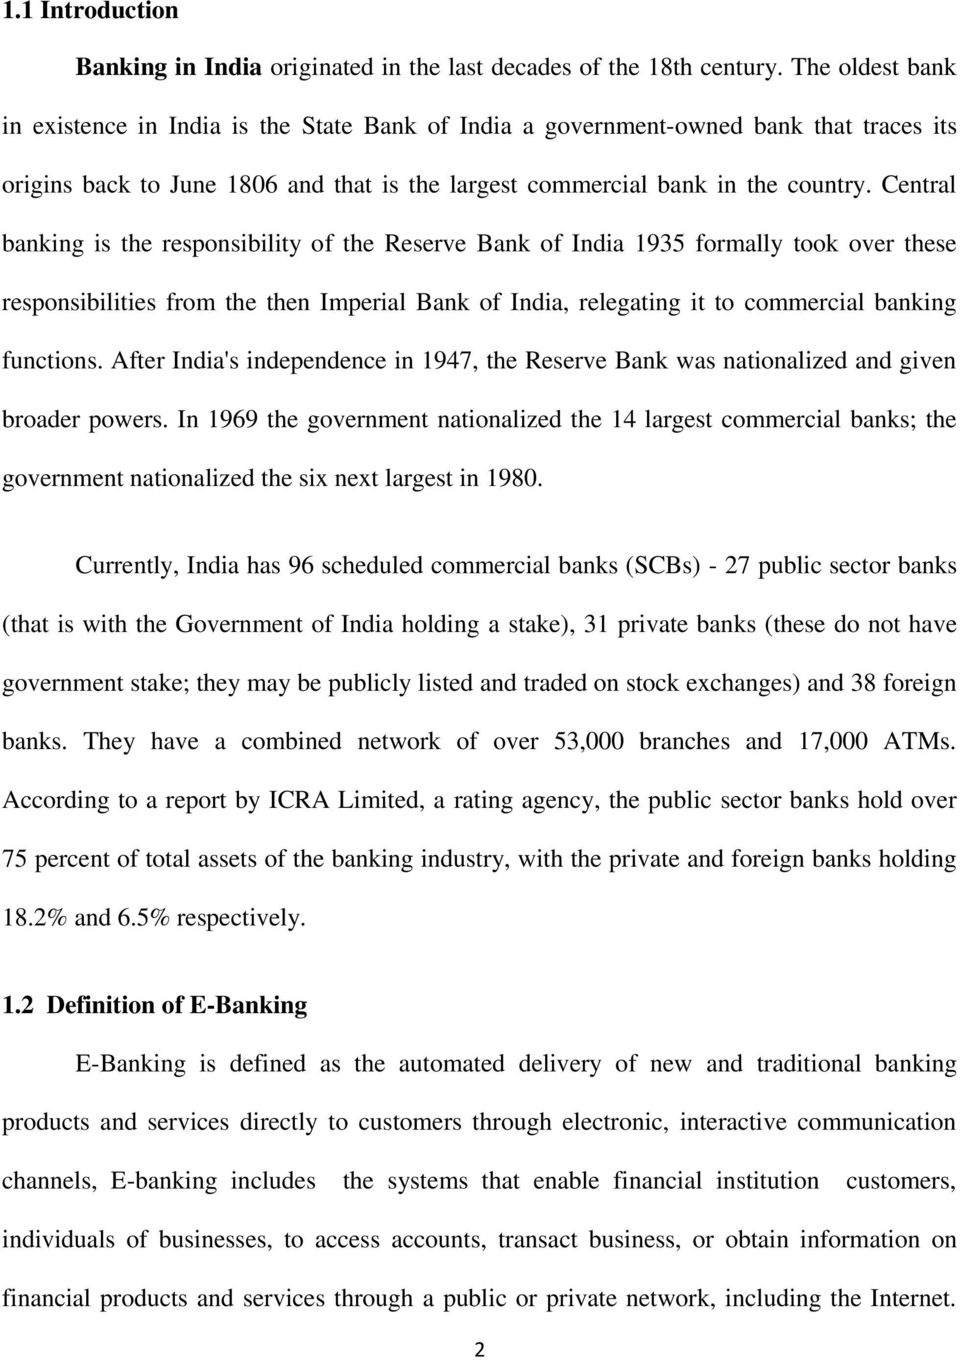 Central banking is the responsibility of the Reserve Bank of India 1935 formally took over these responsibilities from the then Imperial Bank of India, relegating it to commercial banking functions.